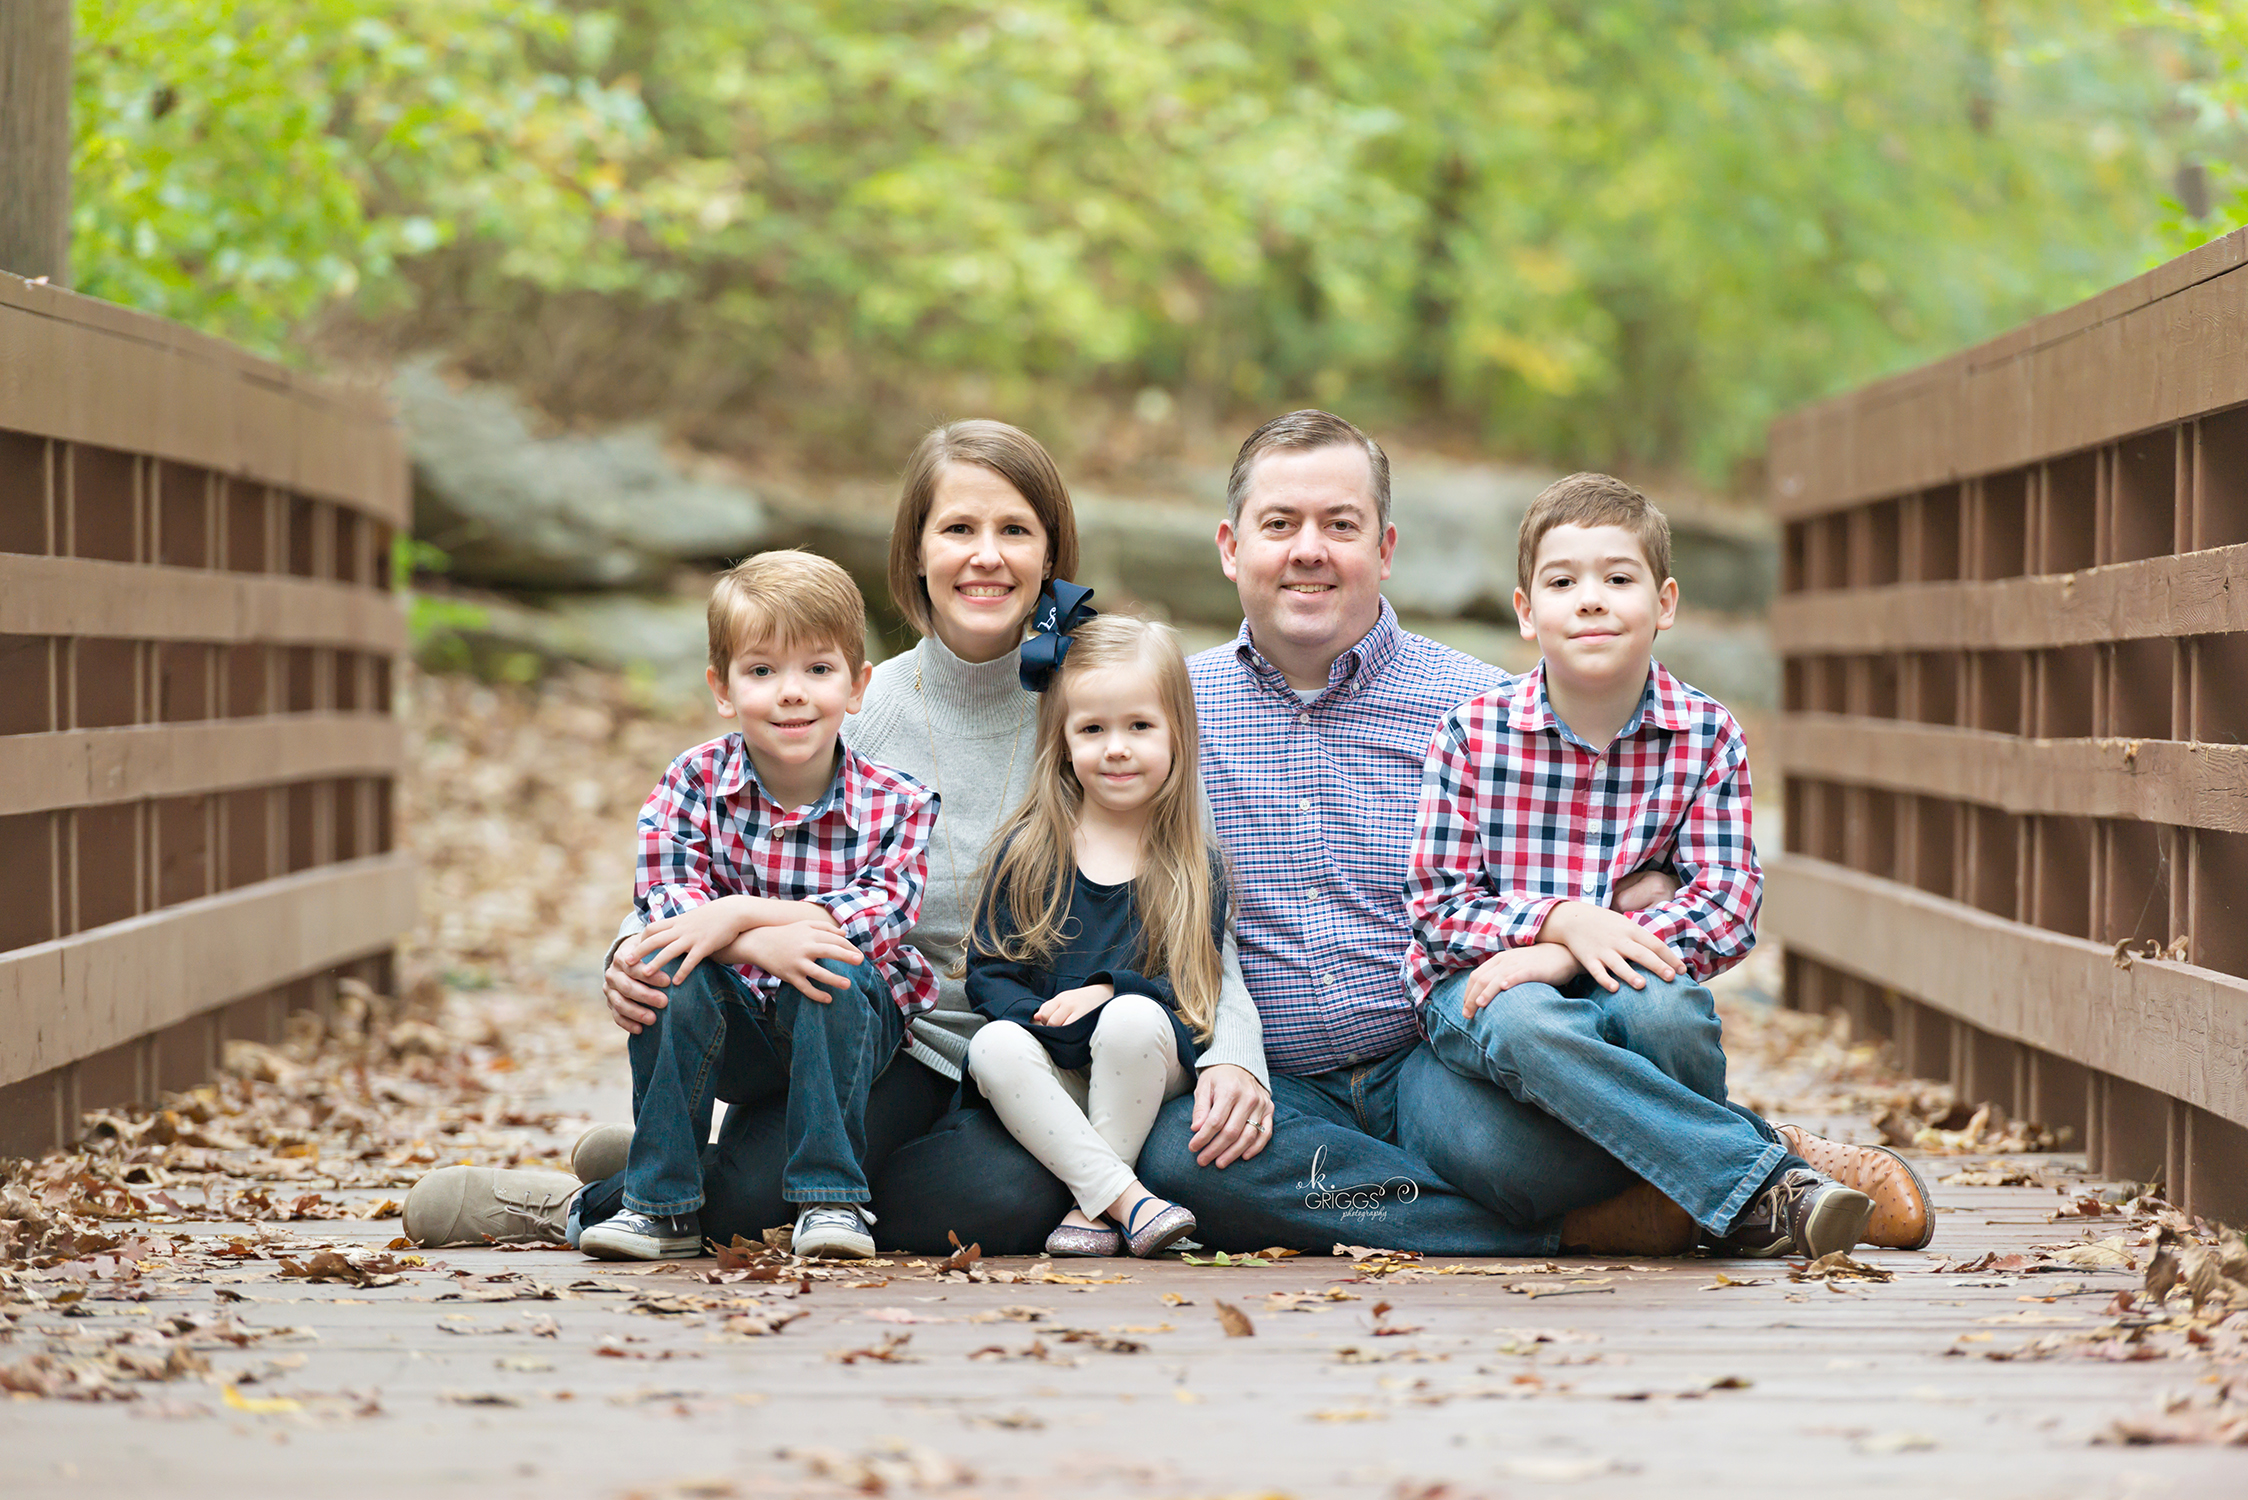 Family of 5 sitting on bridge | St. Louis Photography